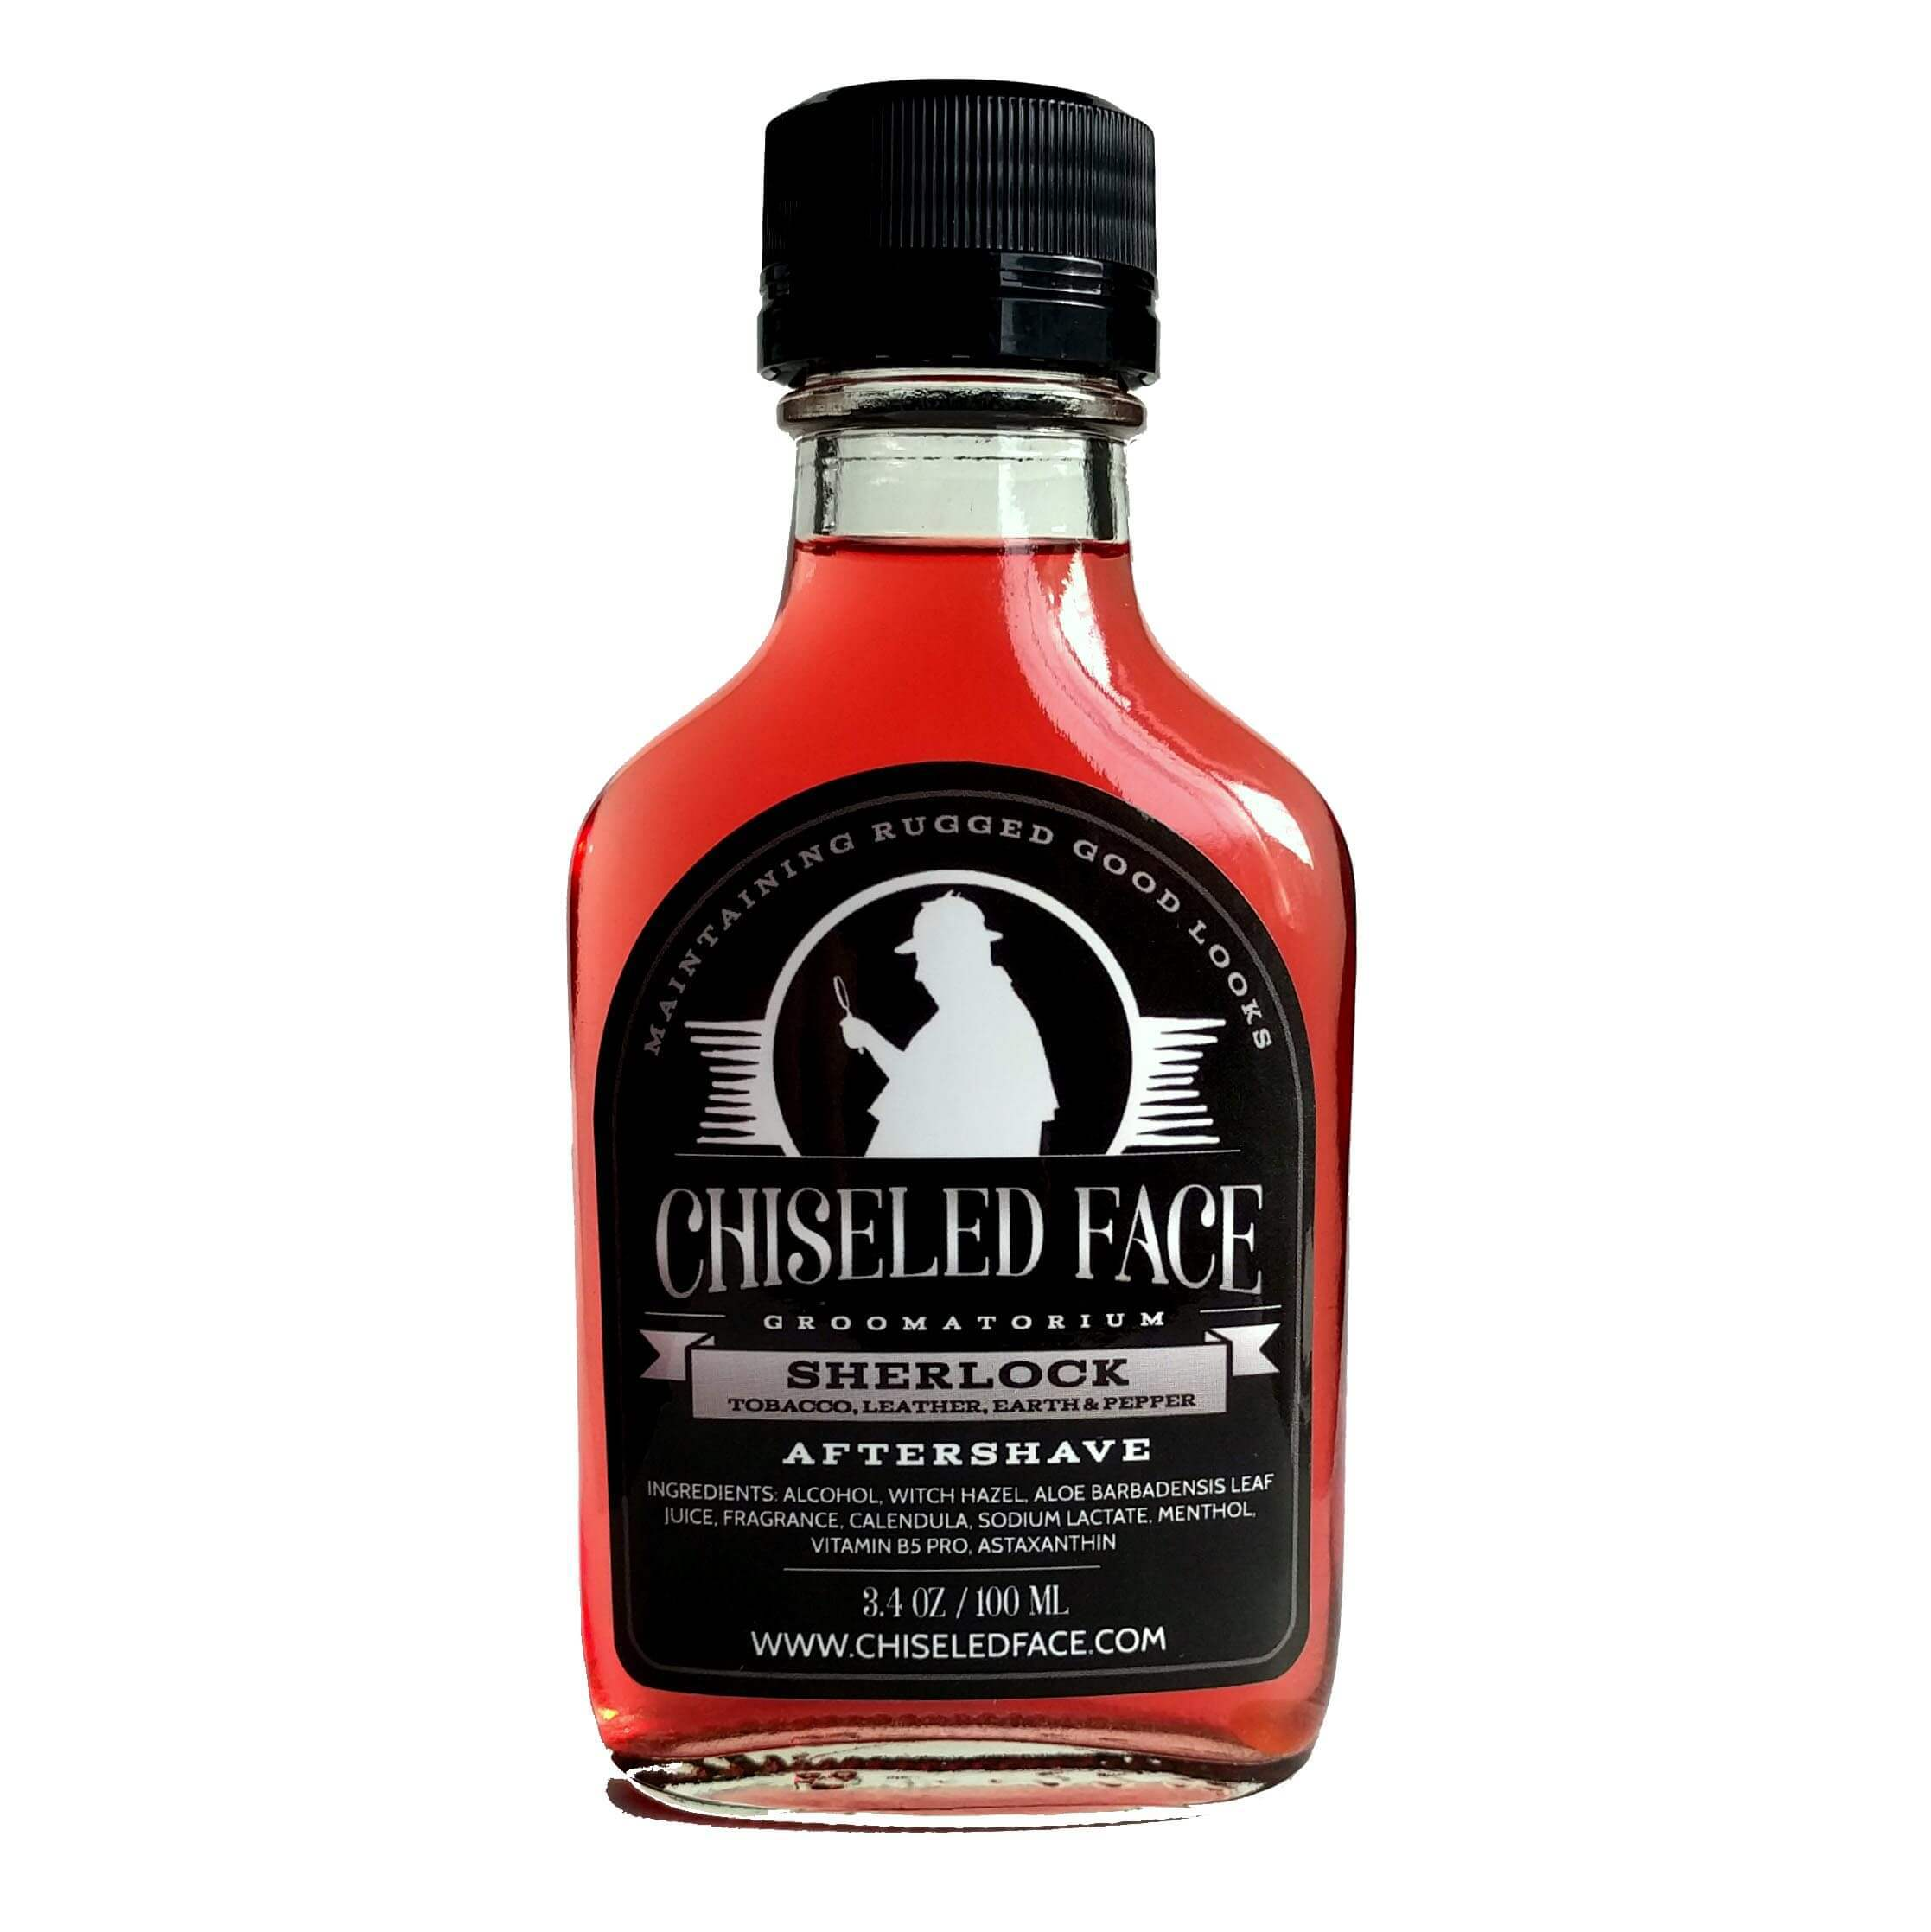 Chiseled Face - Sherlock - Aftershave image